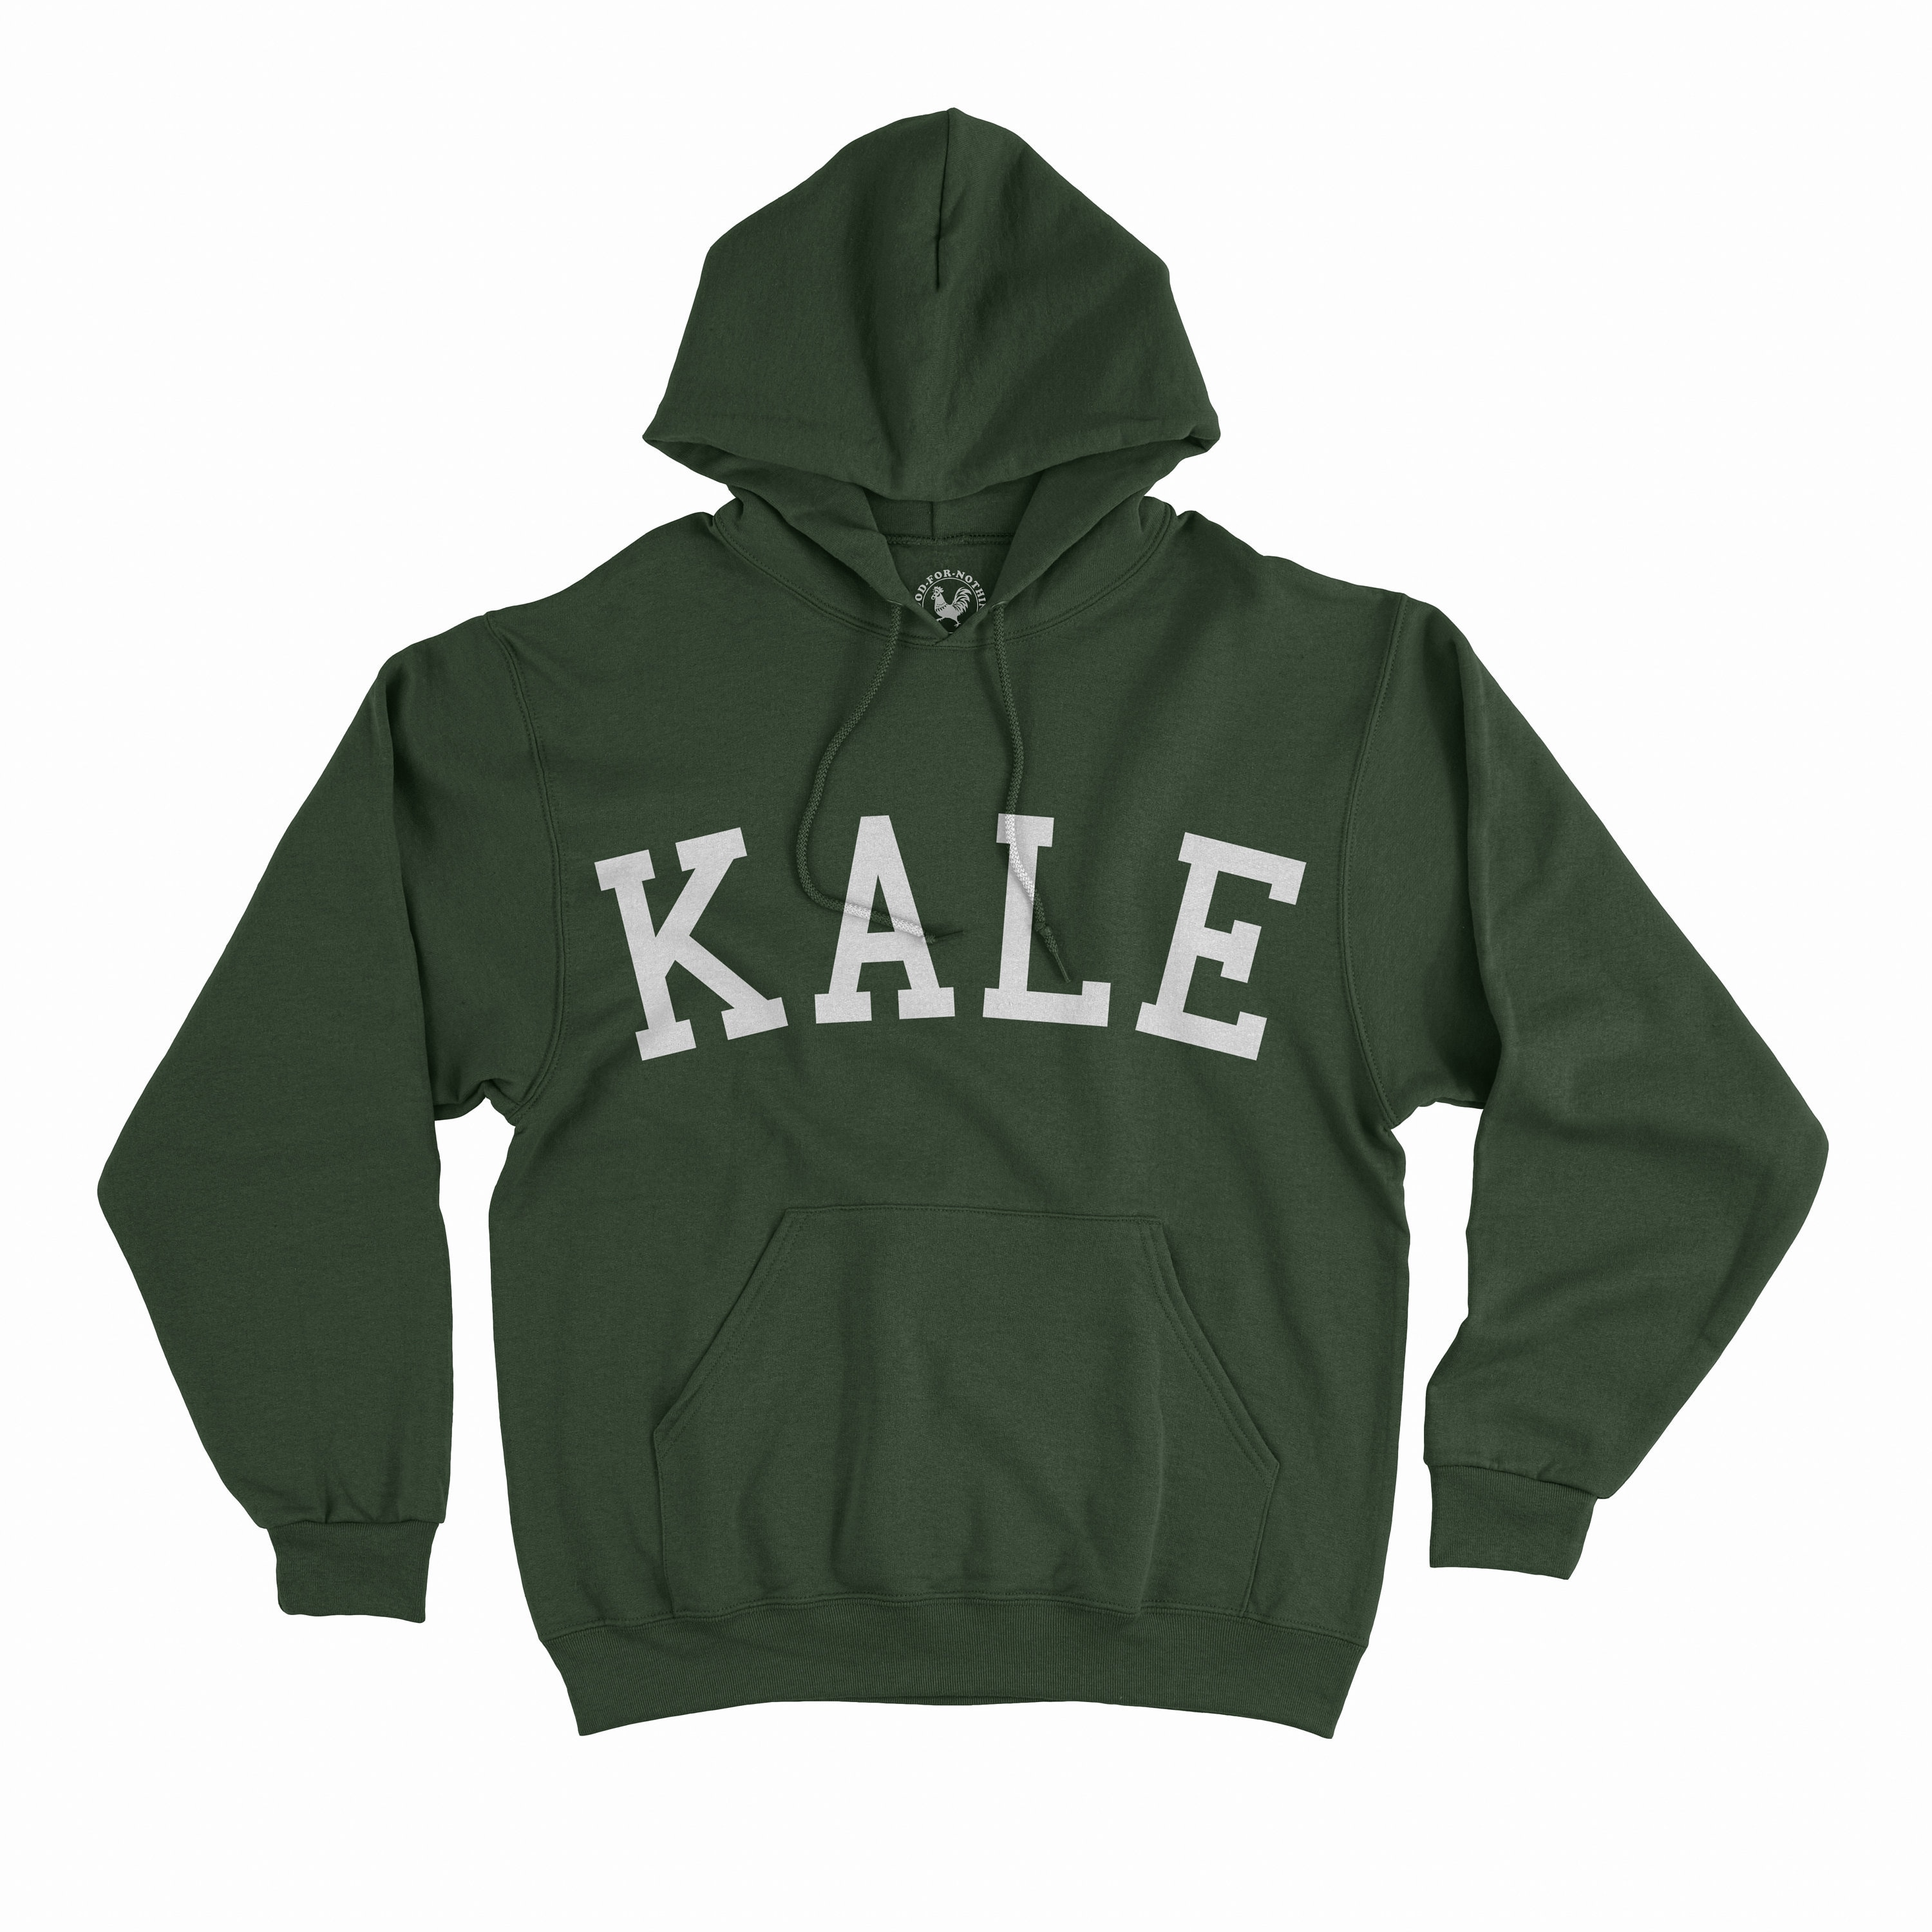 9f6f9b5464d5ac Tumblr Sweatshirts For Sale – EDGE Engineering and Consulting Limited